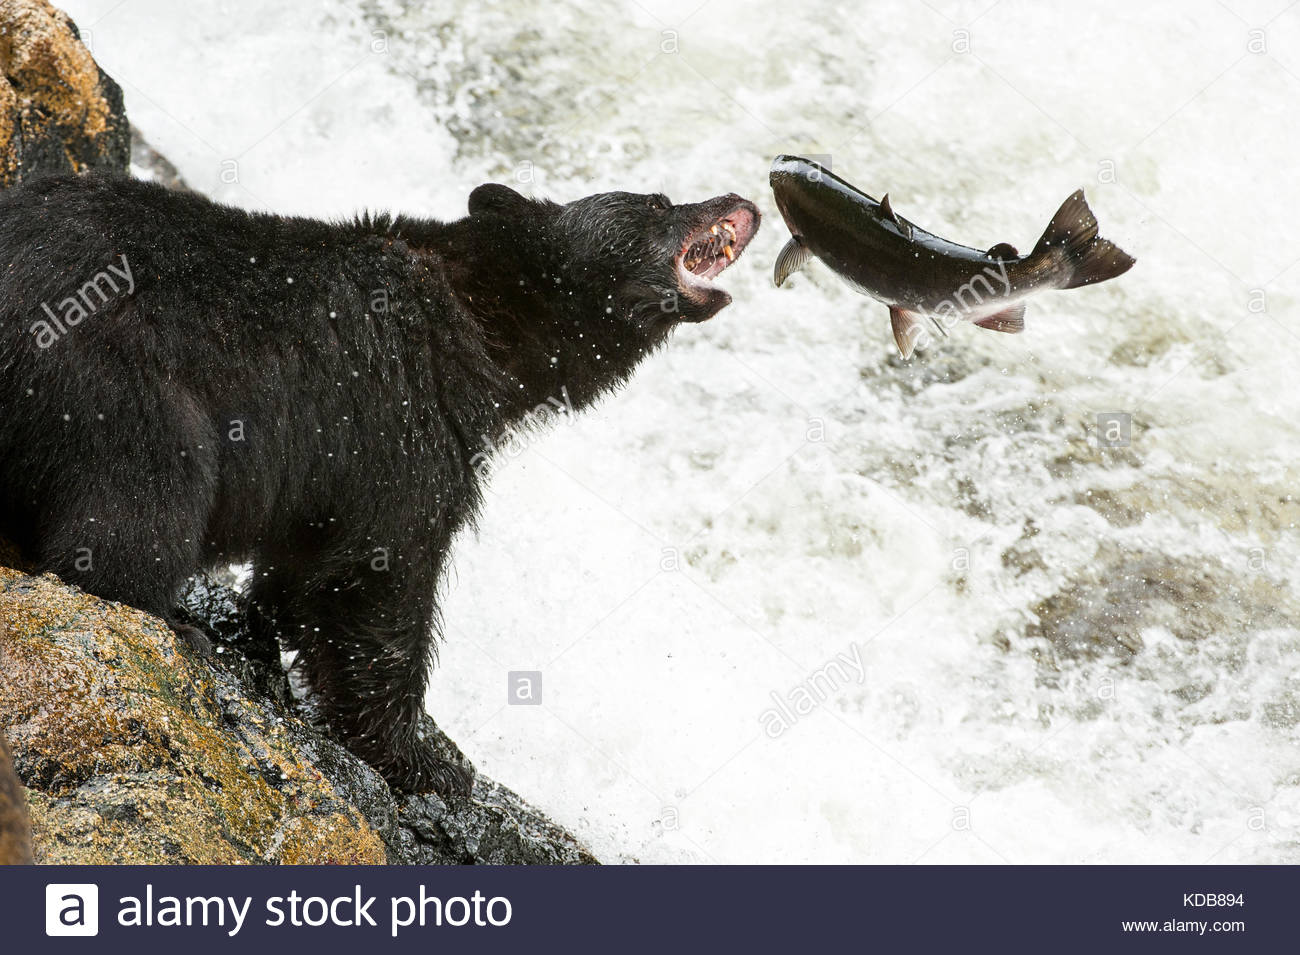 A black bear, Ursus americanus, attempts to catch a coho salmon, Oncorhyncus kisutch,  at a waterfall. - Stock Image